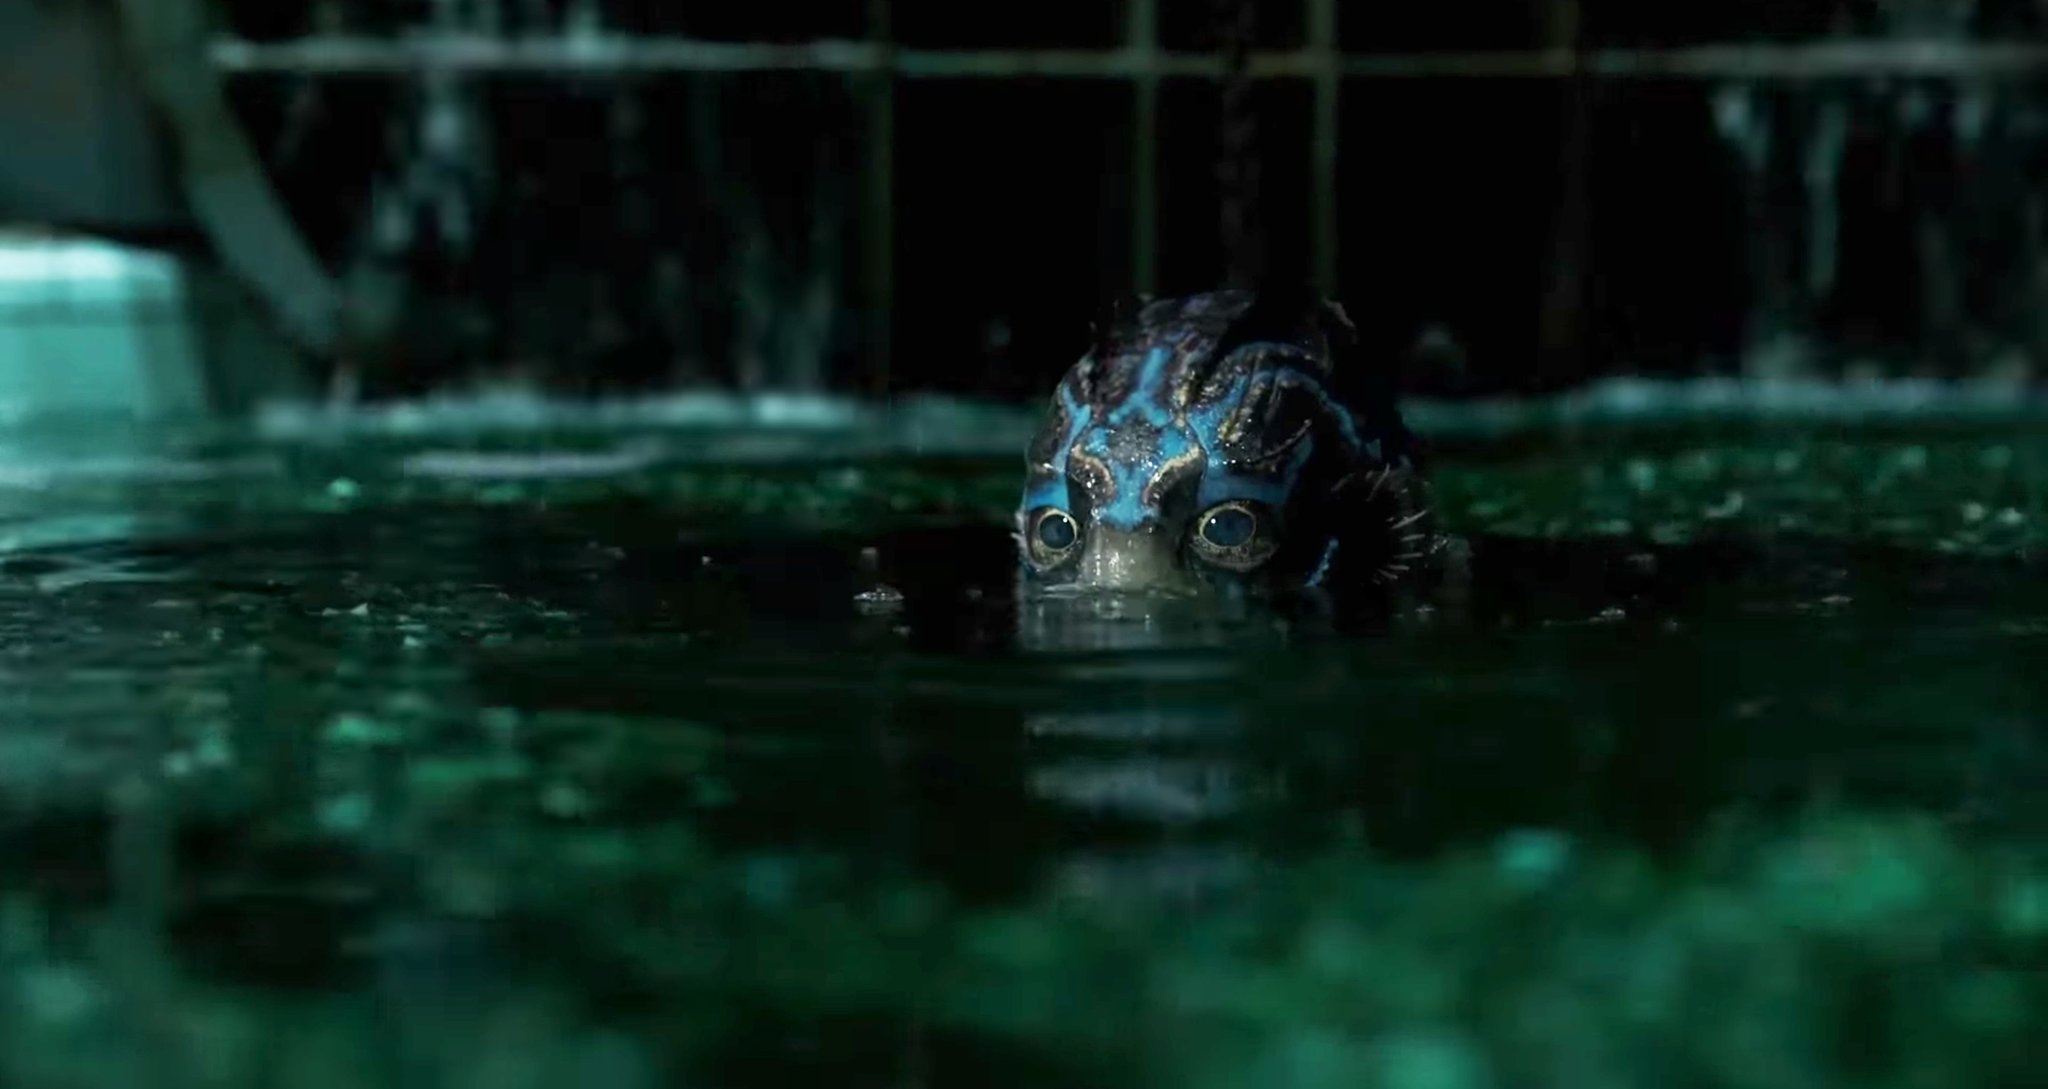 - The beautiful colors of The Shape of Water